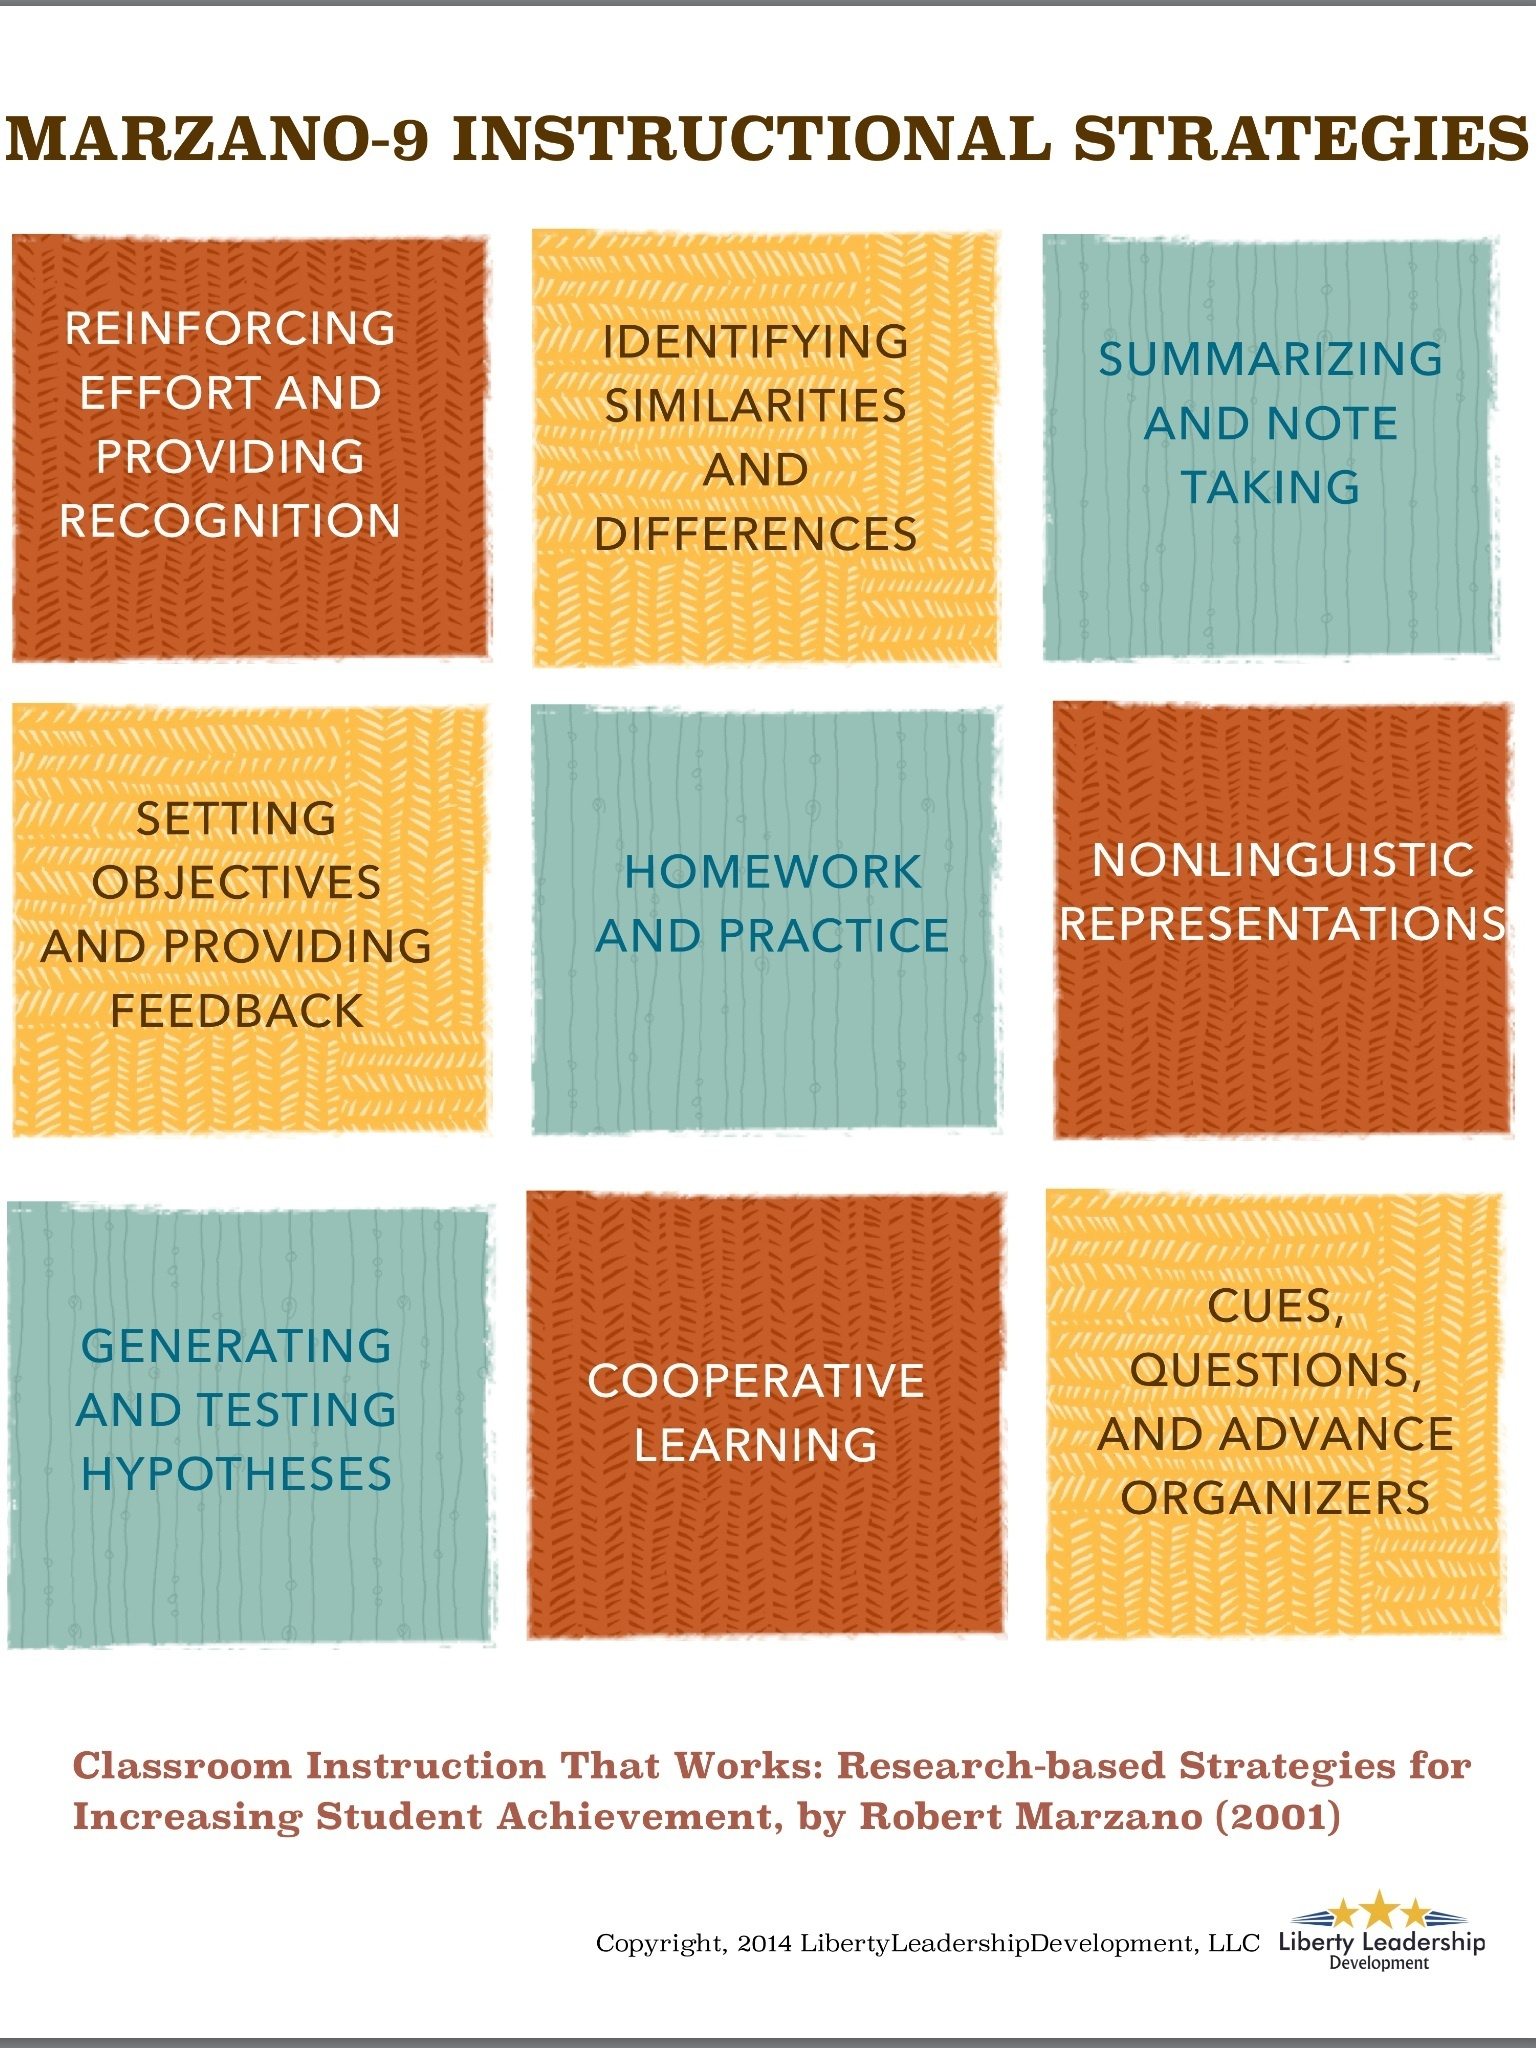 Marzano's 9 Instructional Strategies Infographic